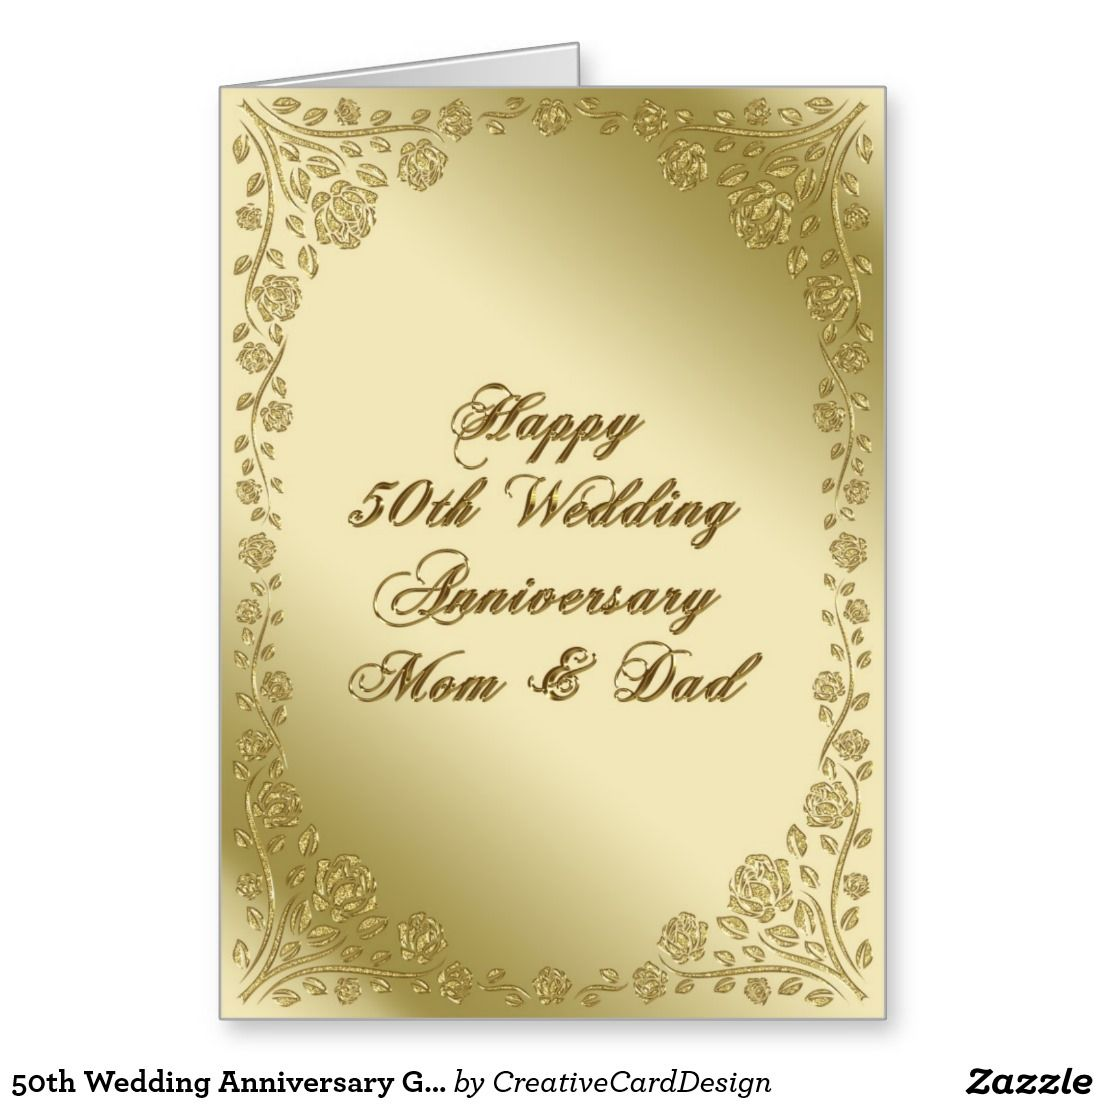 Th wedding anniversary greeting card